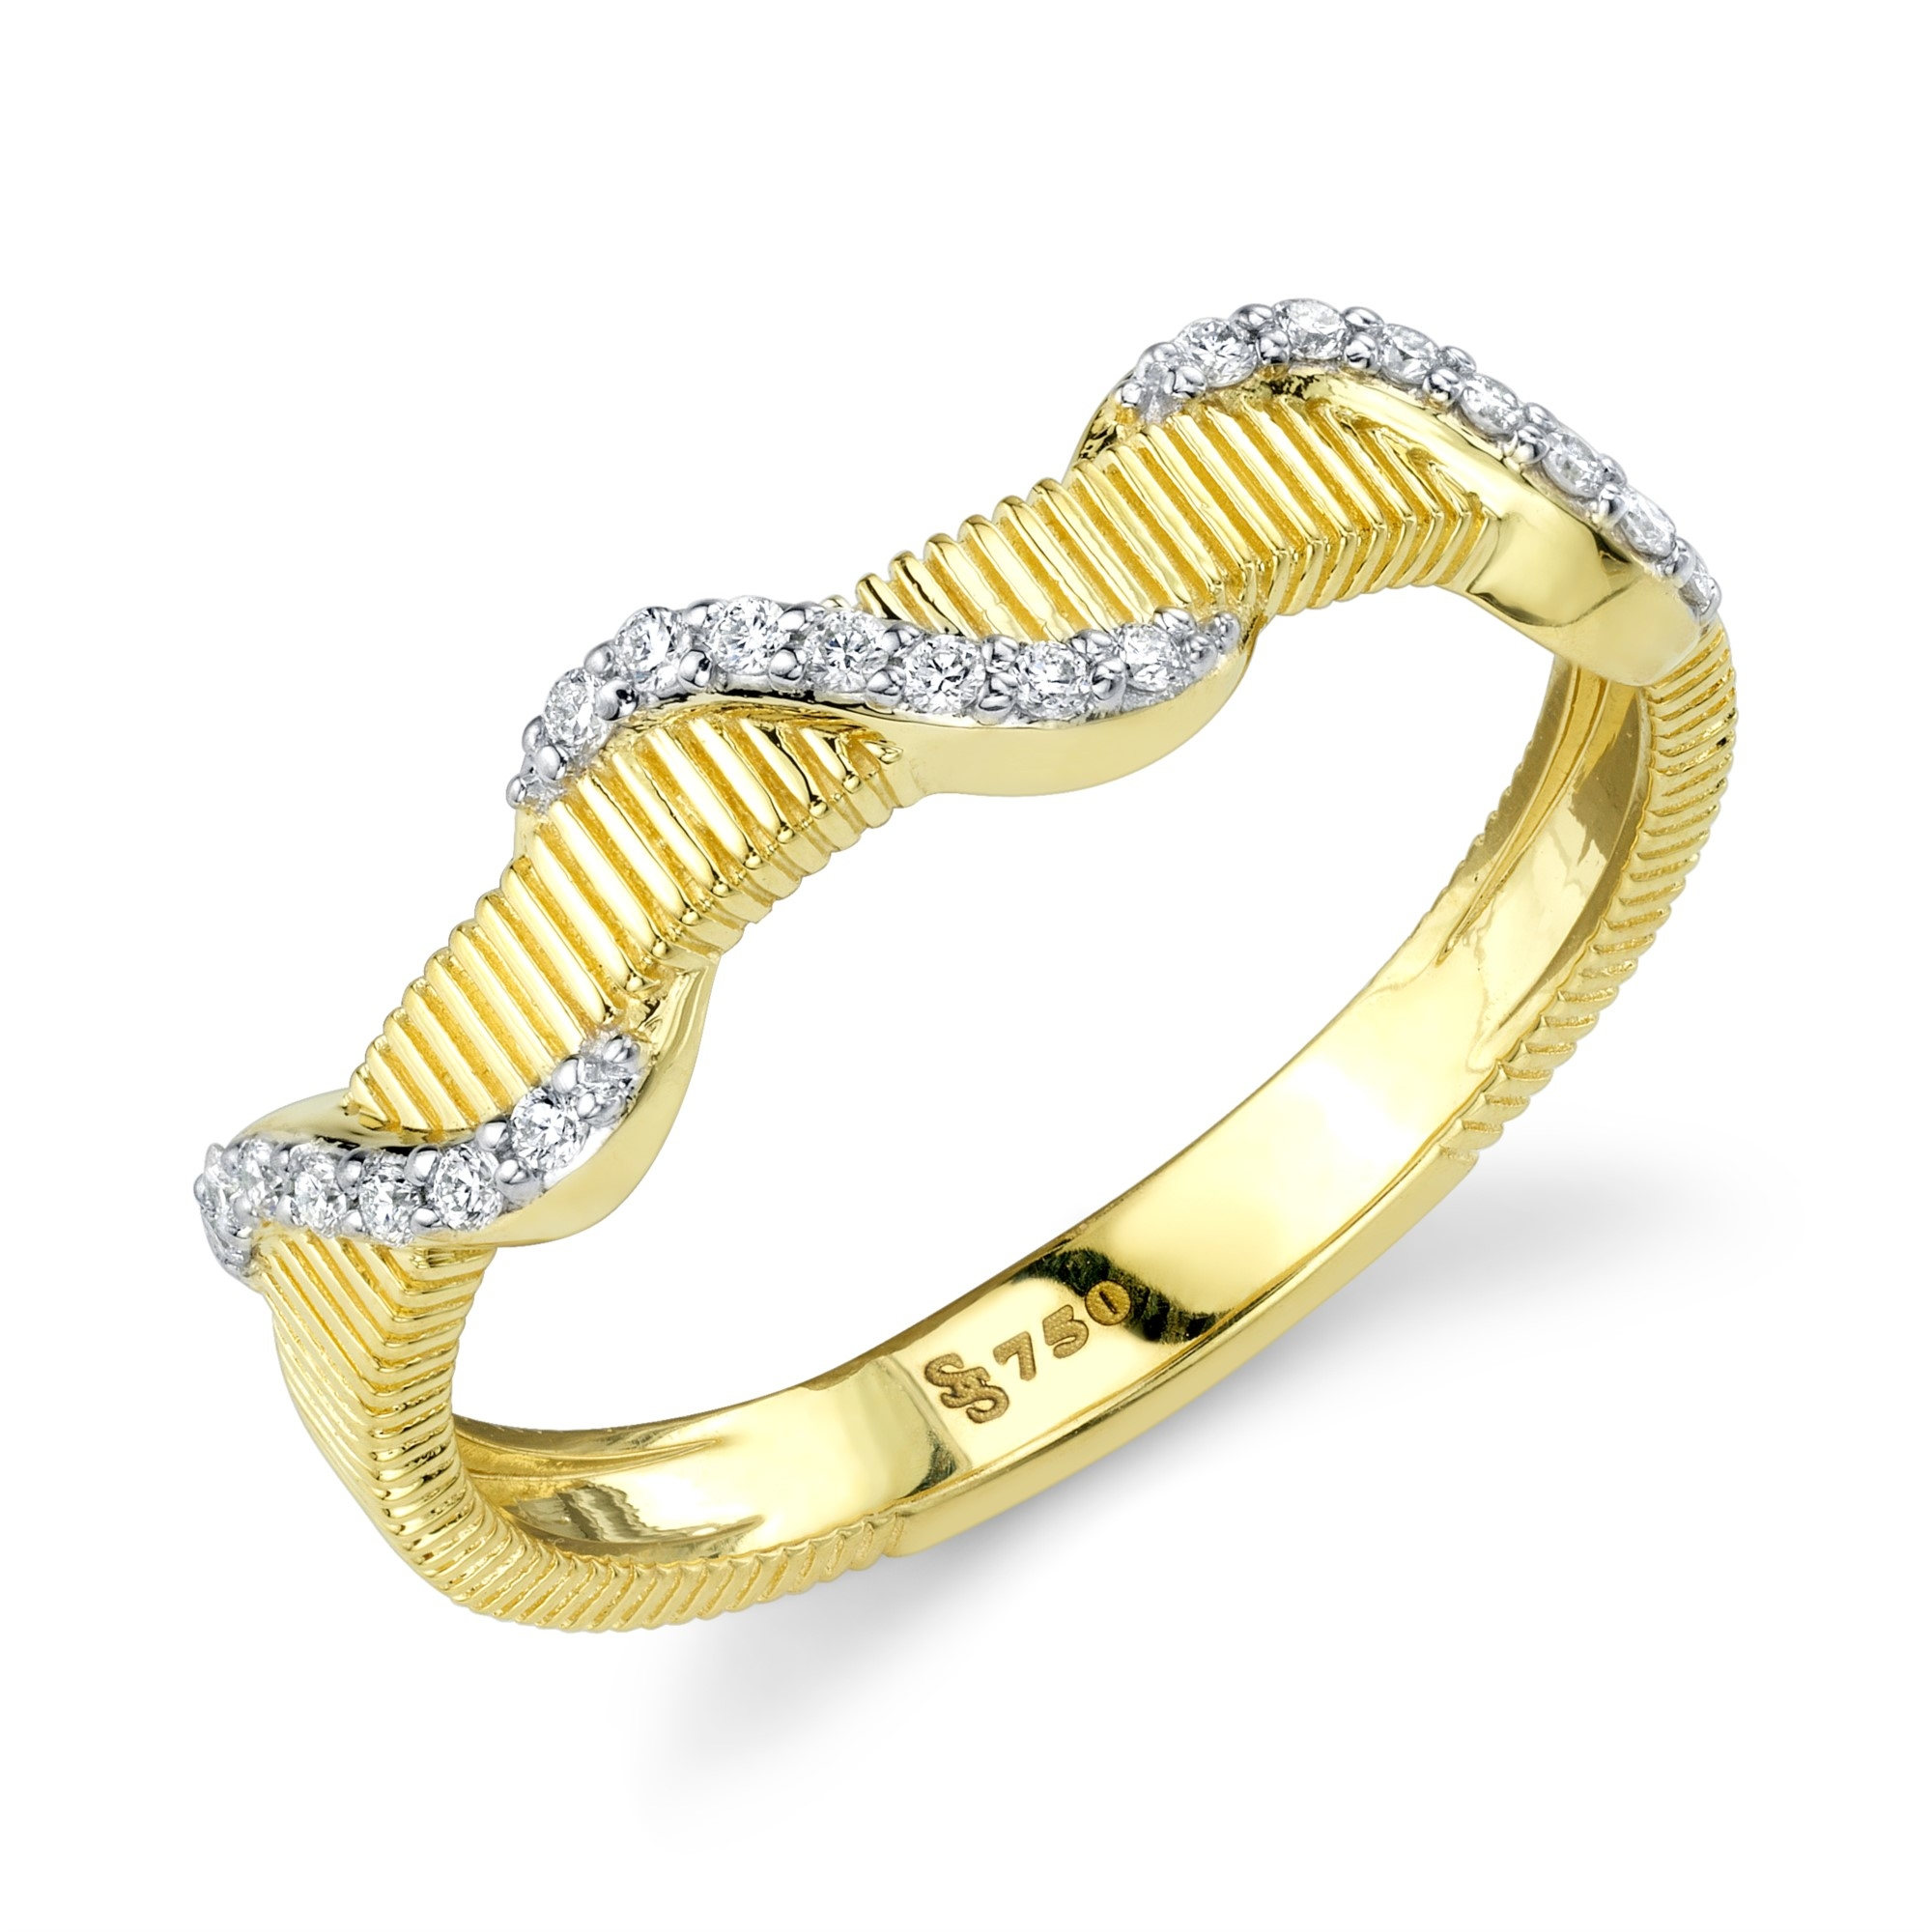 Sloane Street 18K Yellow Gold .10cts  Diamonds Gold Ring with Stones R009F-WDCB-Y